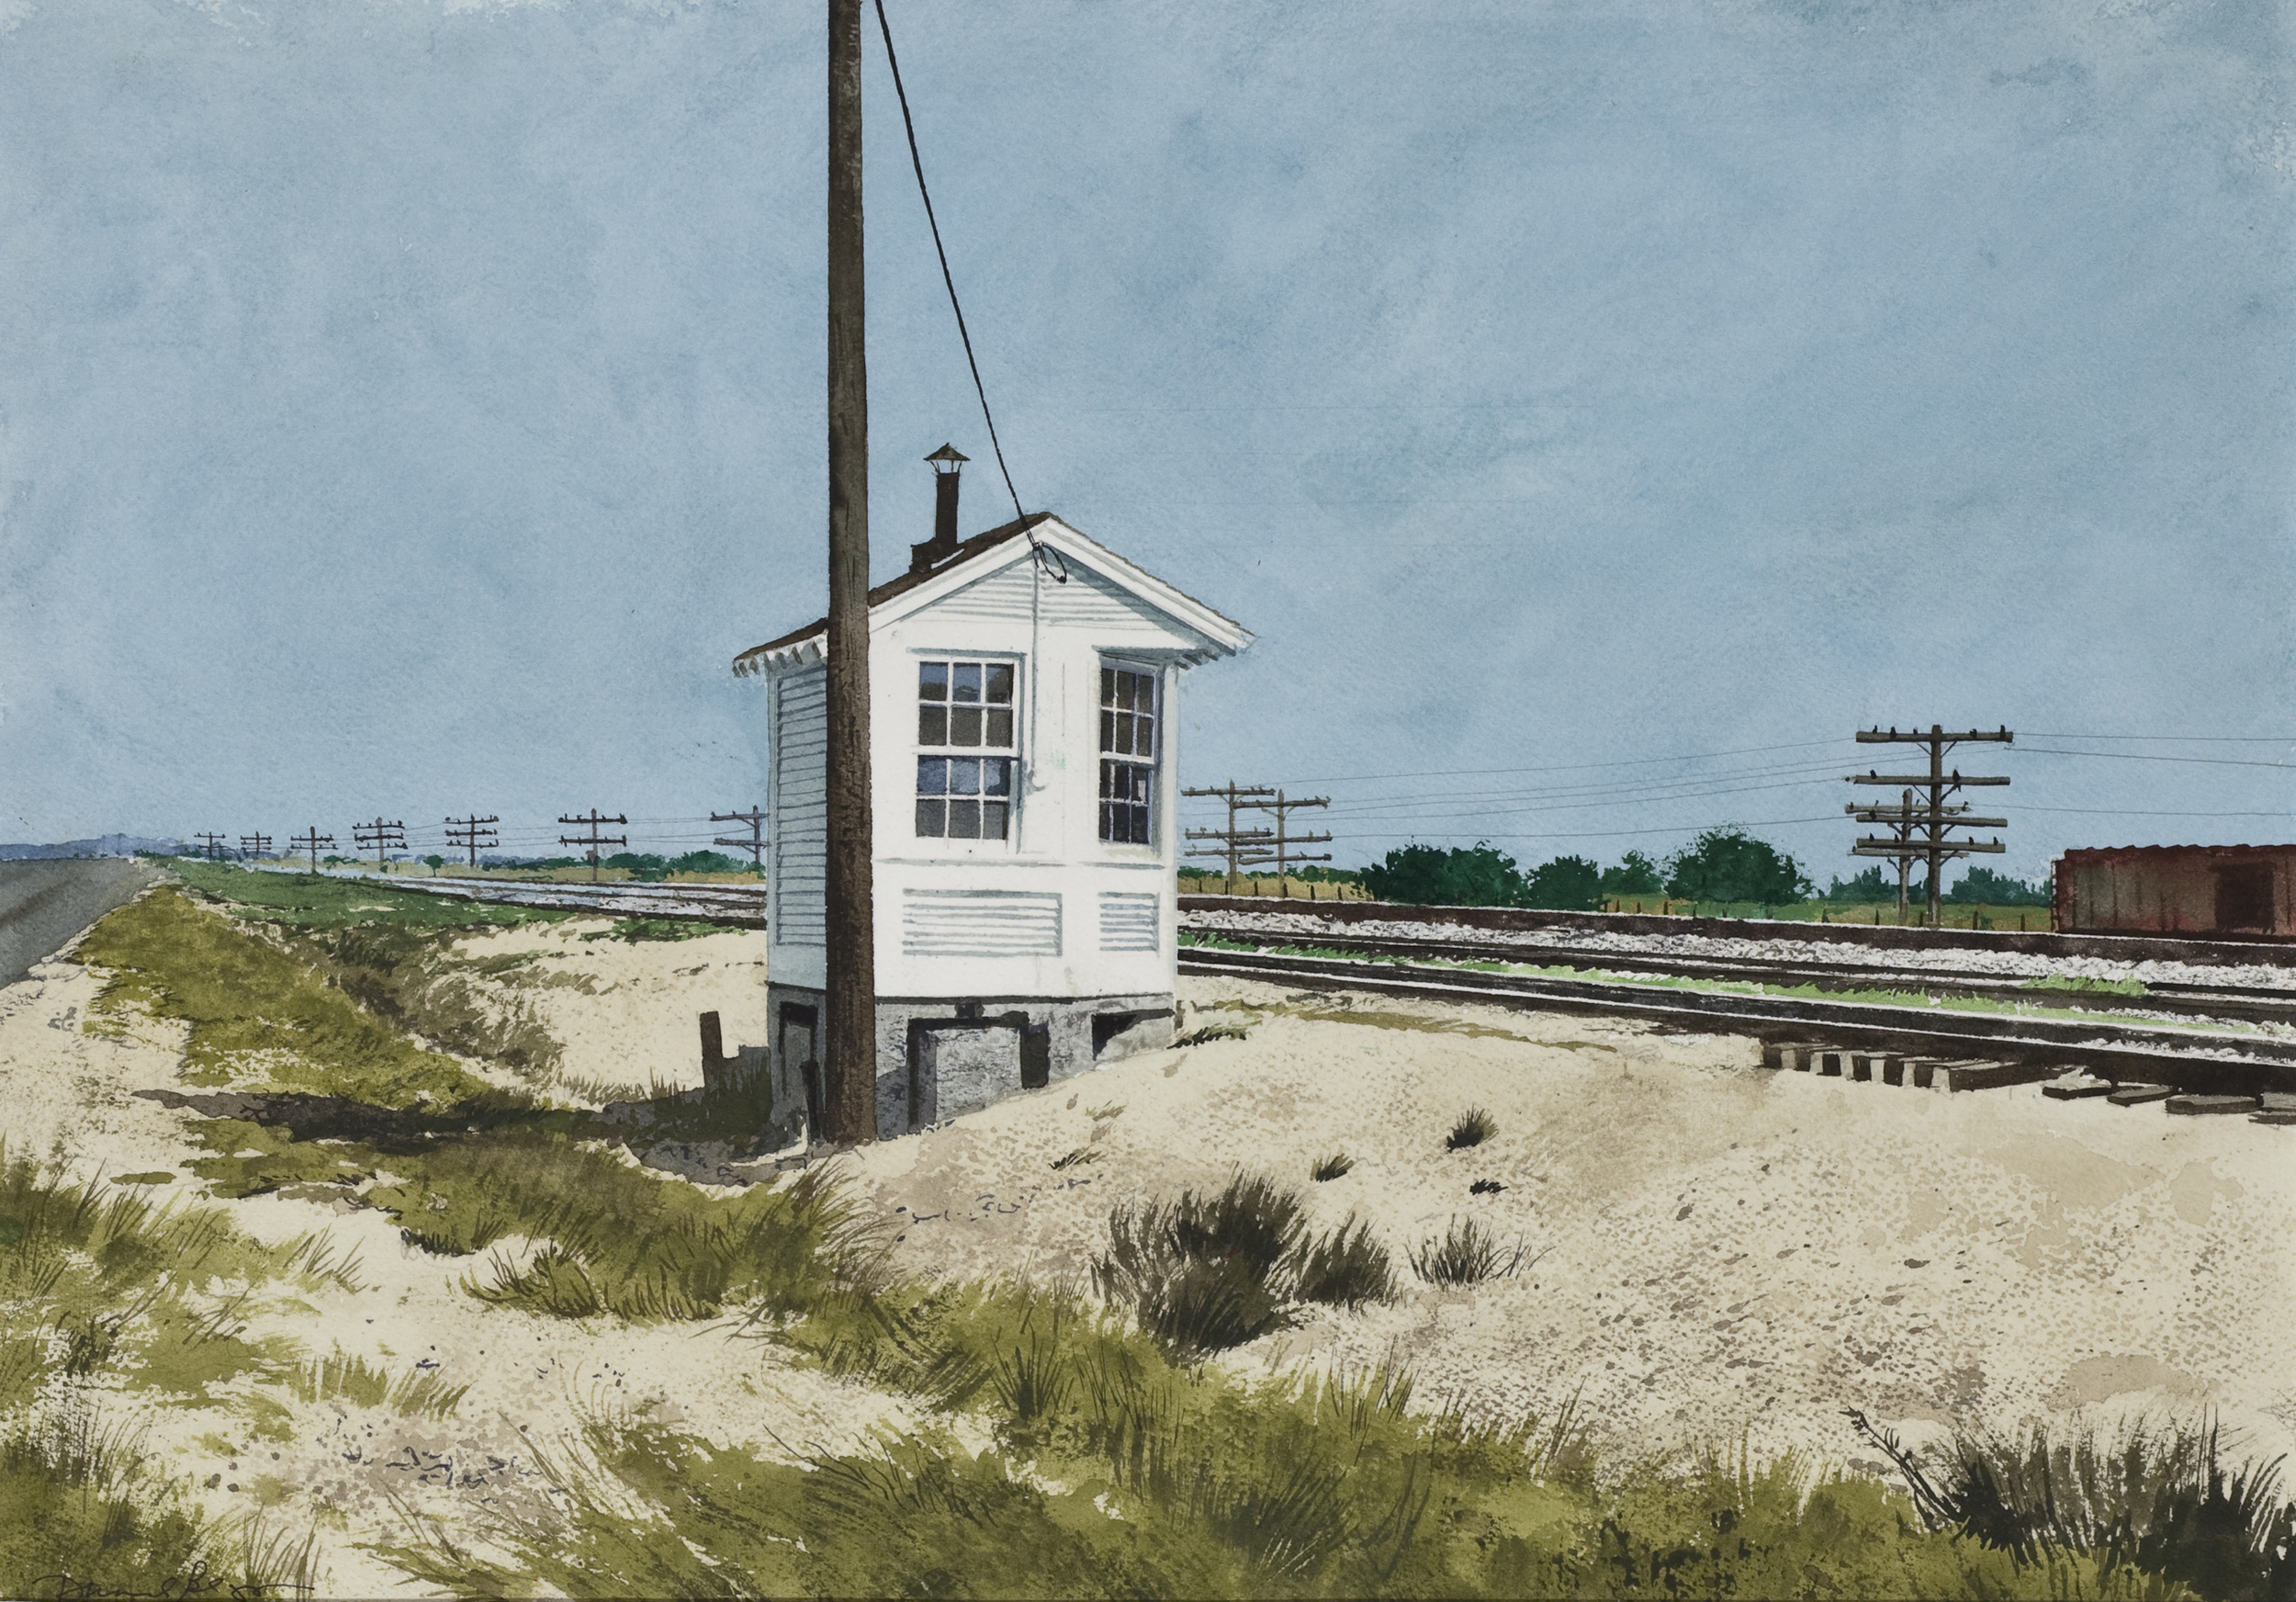 "Daniel Blagg, Switchman's Shack, 2012, watercolor on paper, 20 1/2 x 28"". Private Collection, Fort Worth, TX."